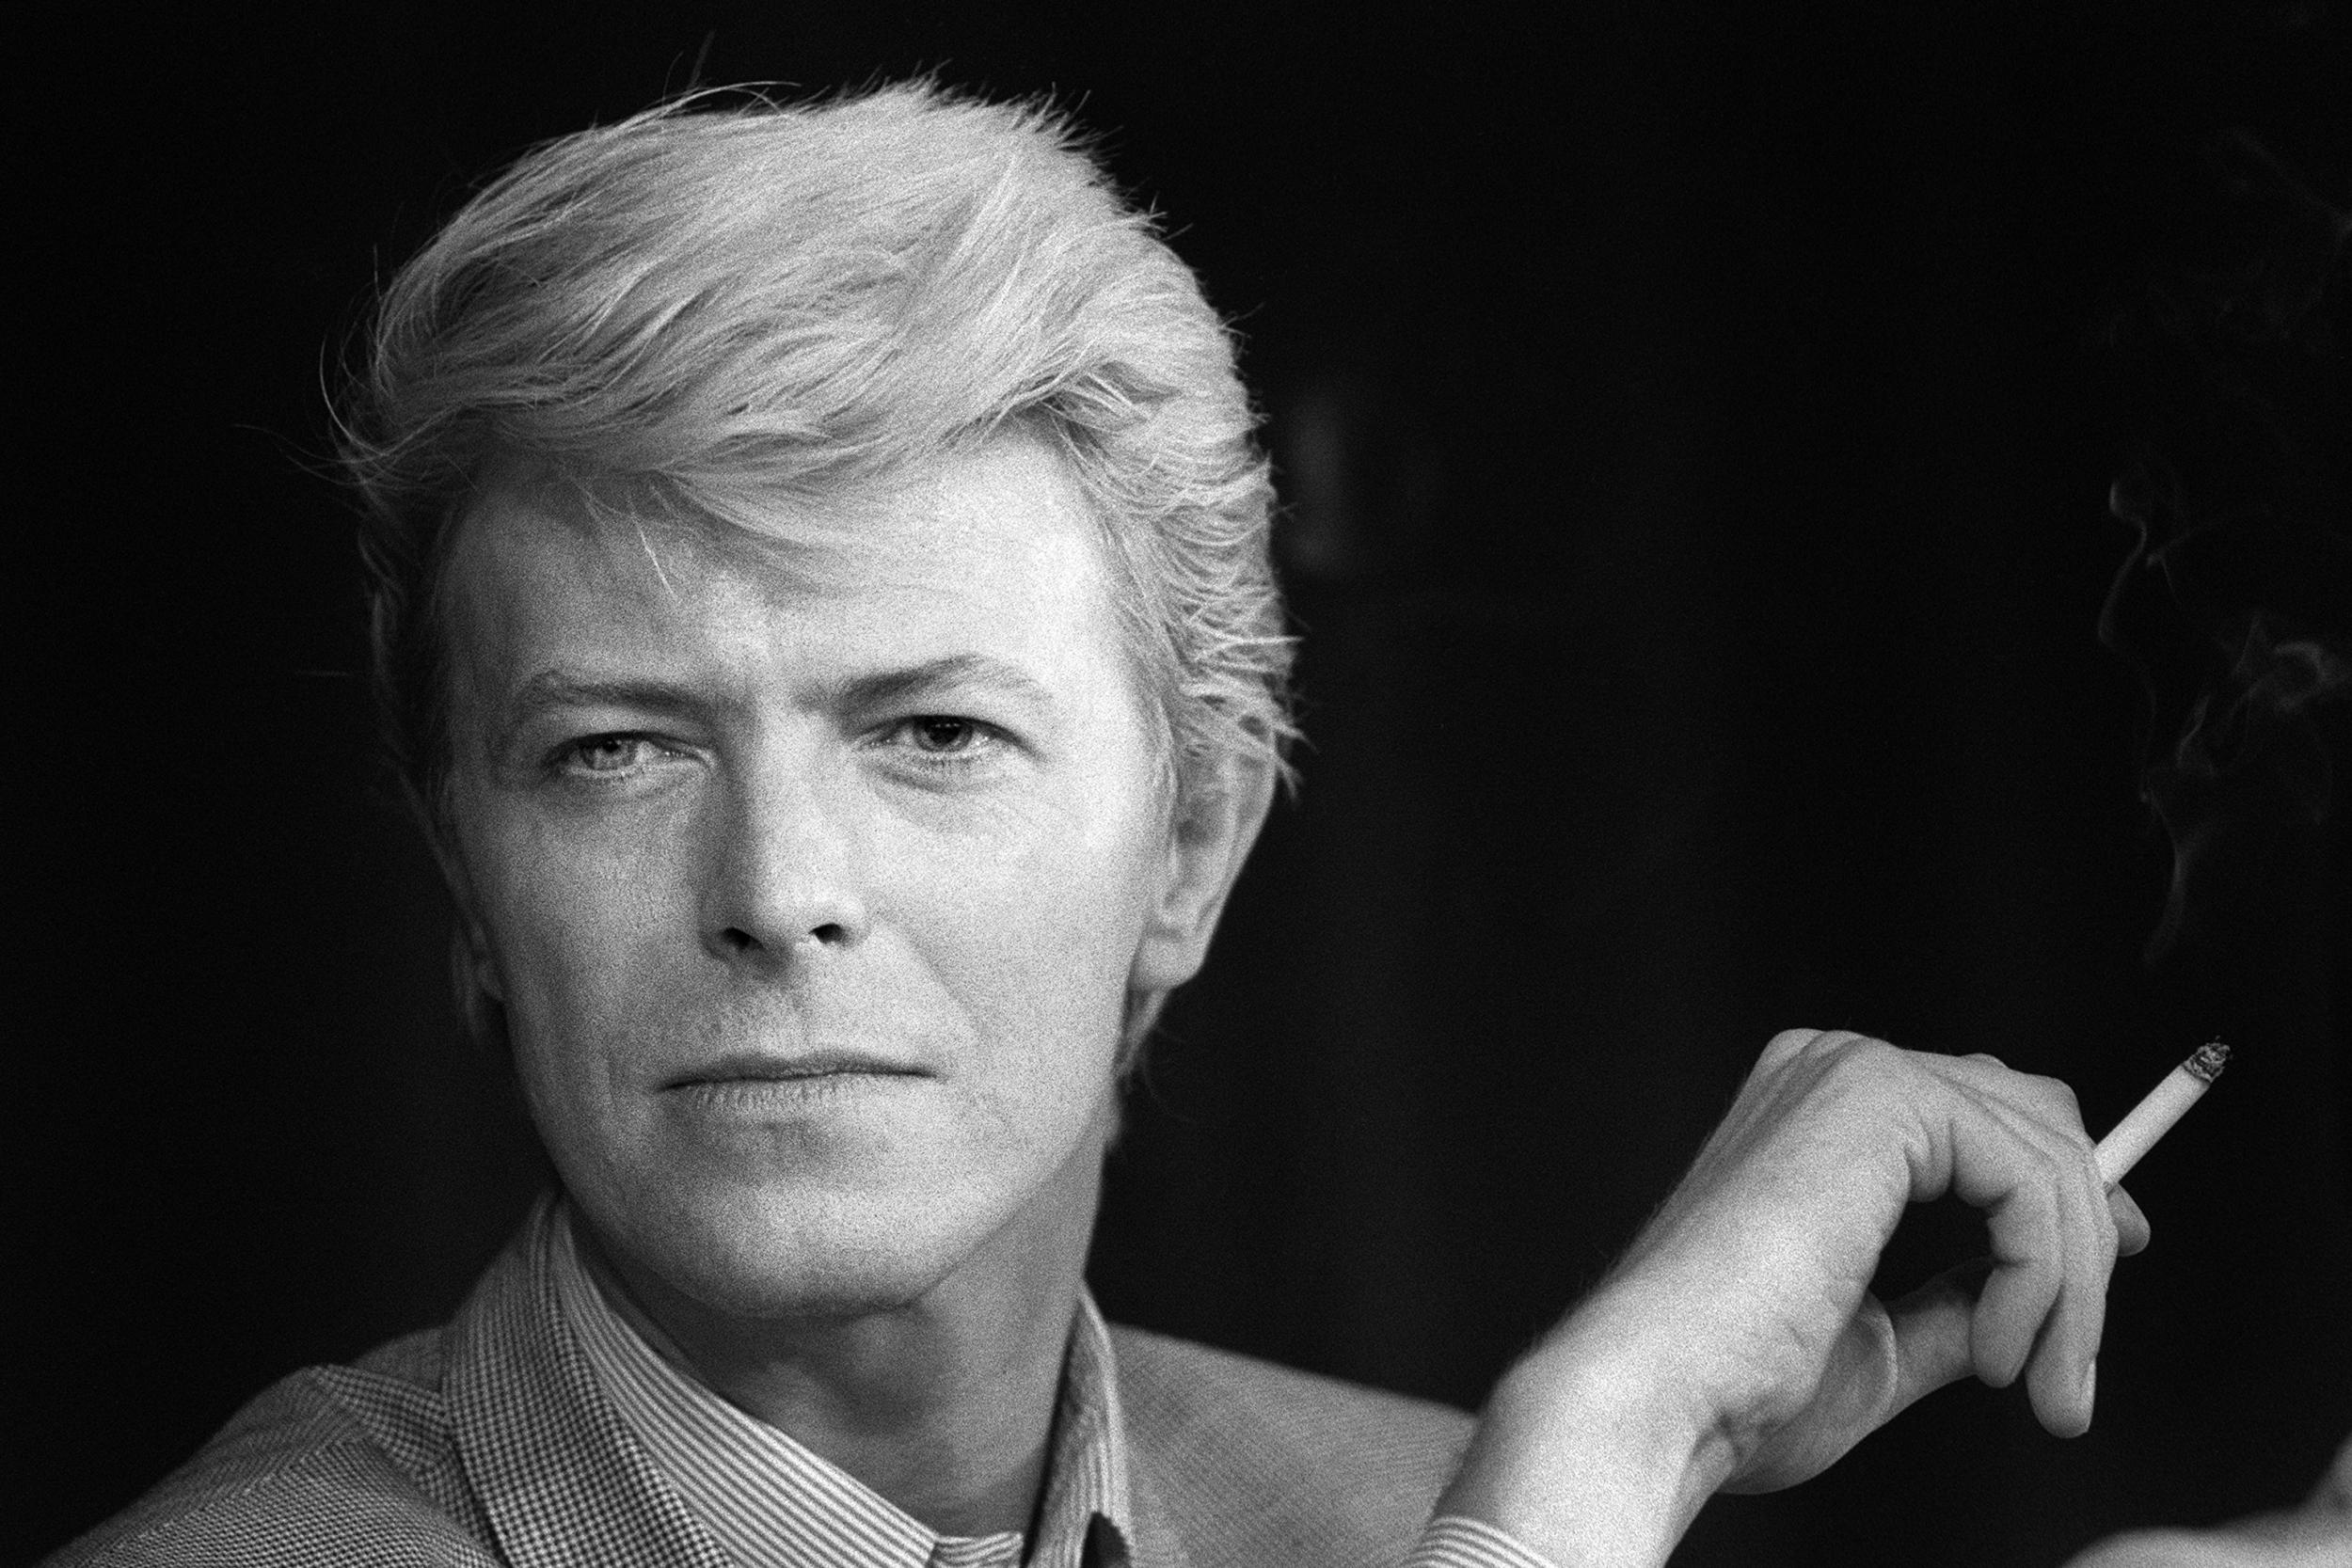 David Bowie 71st birthday: His 15 greatest non-single album tracks